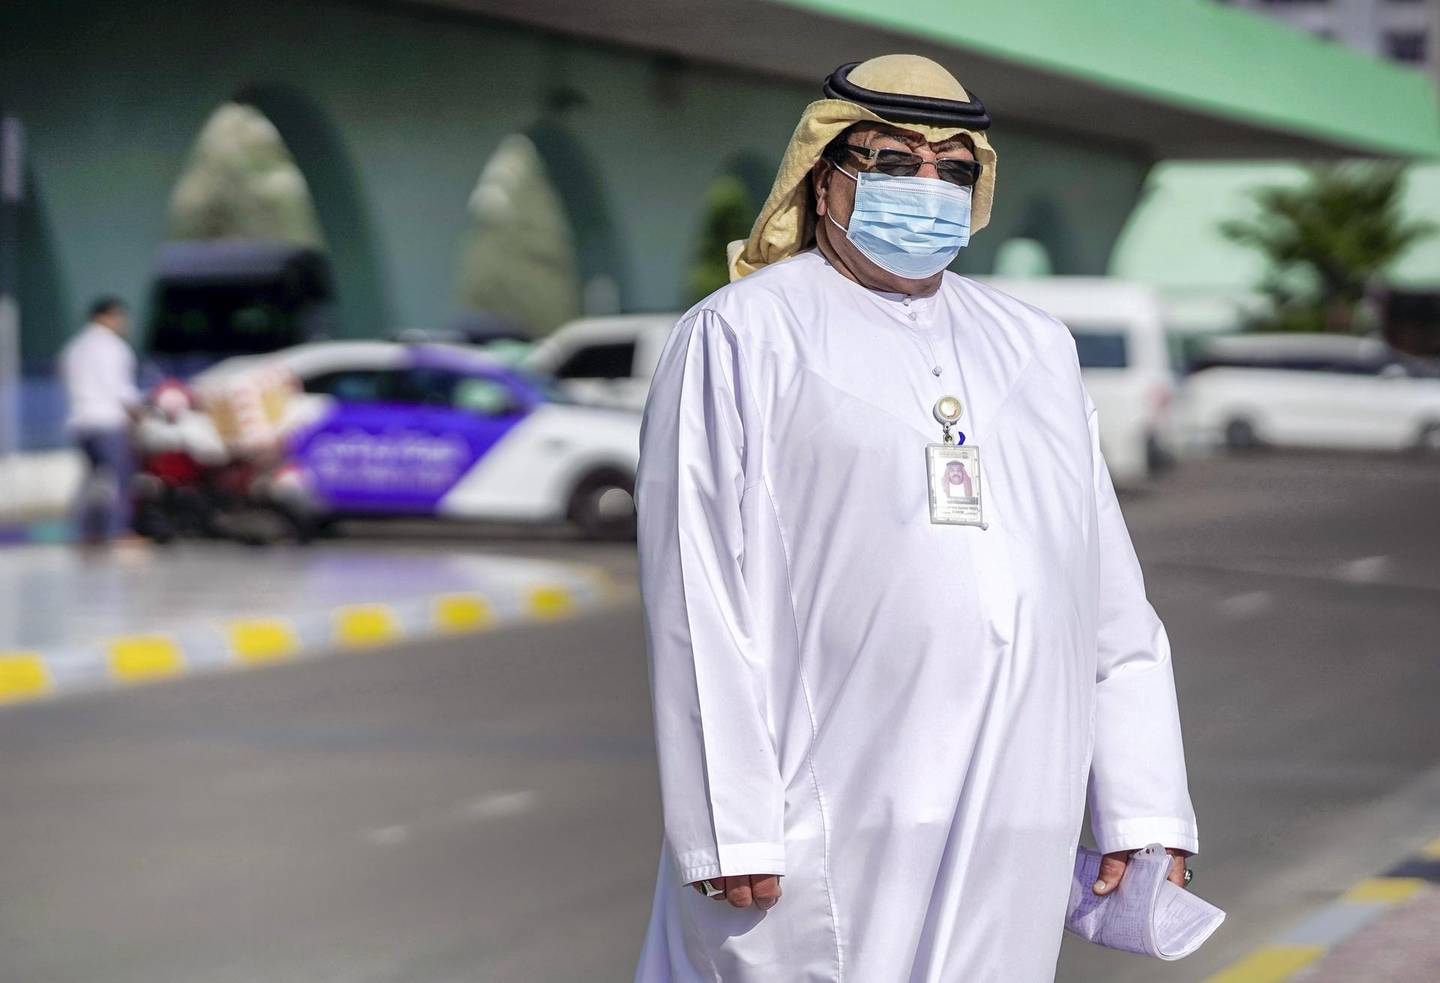 Abu Dhabi, United Arab Emirates, March 24, 2020. Standalone and Possible Photo Project: UAE Heroes of  Coronavirus--  Faisal Salih, Quality Control Officer at the Abu Dhabi Main Bus Terminal makes sure everything goes smoothly in spite of the ongoing coronavirus epidemic.  He is originally from Sudan and has been working at the AUH Central Bus Terminal for 20 years now.Victor Besa / The National